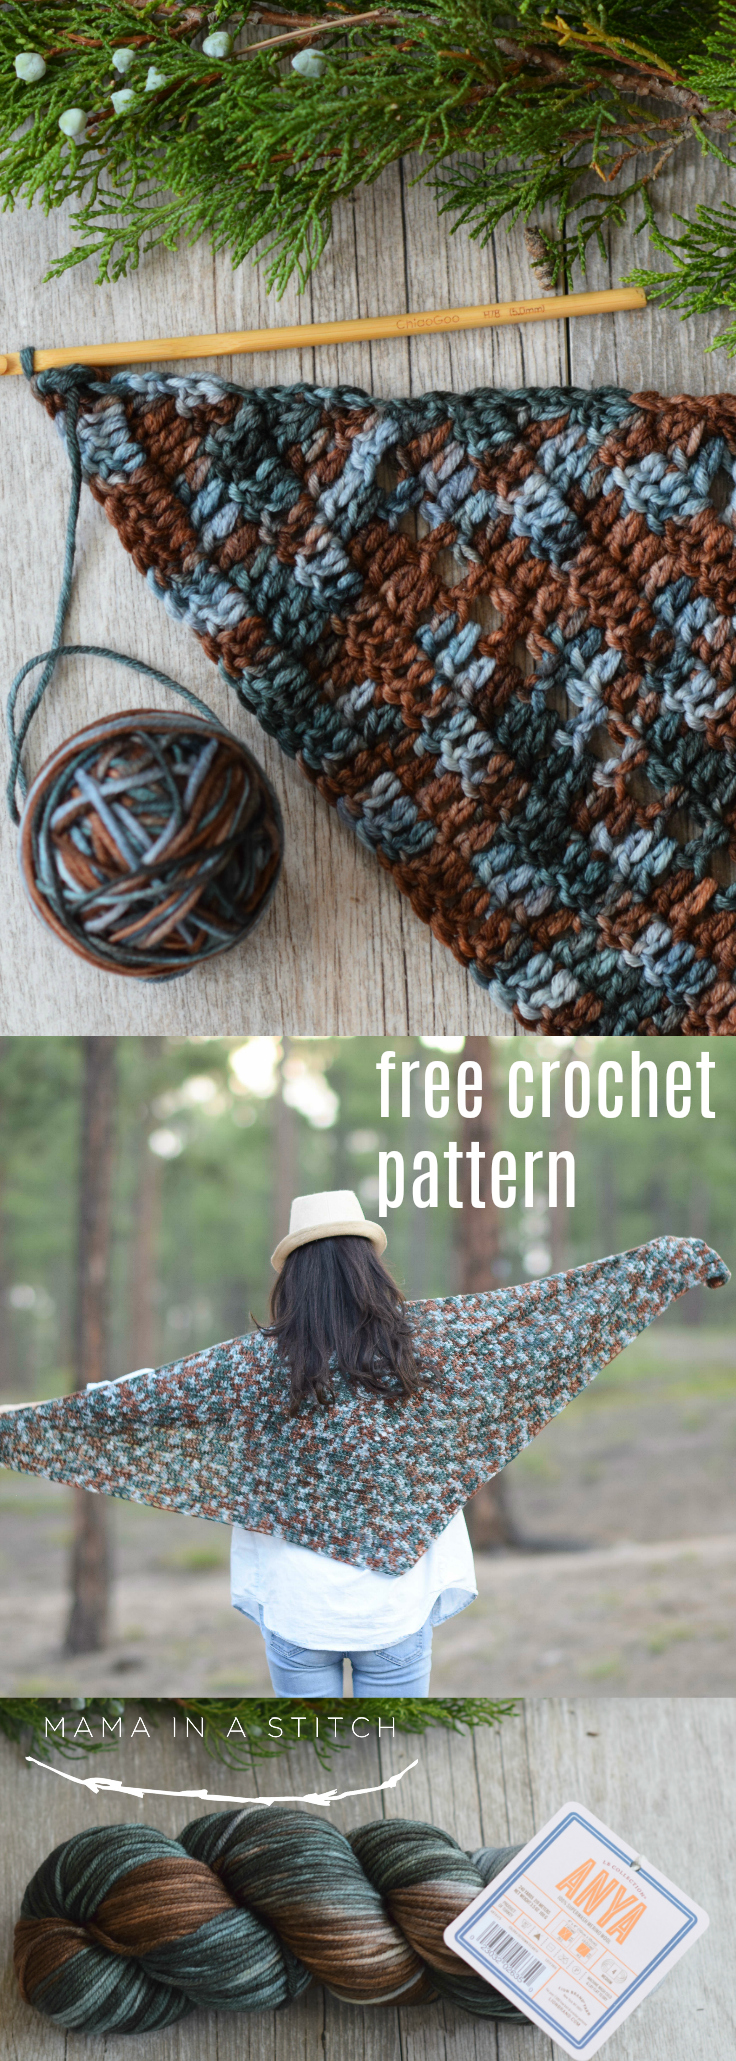 Love this natural crocheted wrap.  This is a free crochet pattern that's pretty easy! So nice for fall and winter to give as gifts or make for yourself.  #crochetpattern #crafts #diy #style